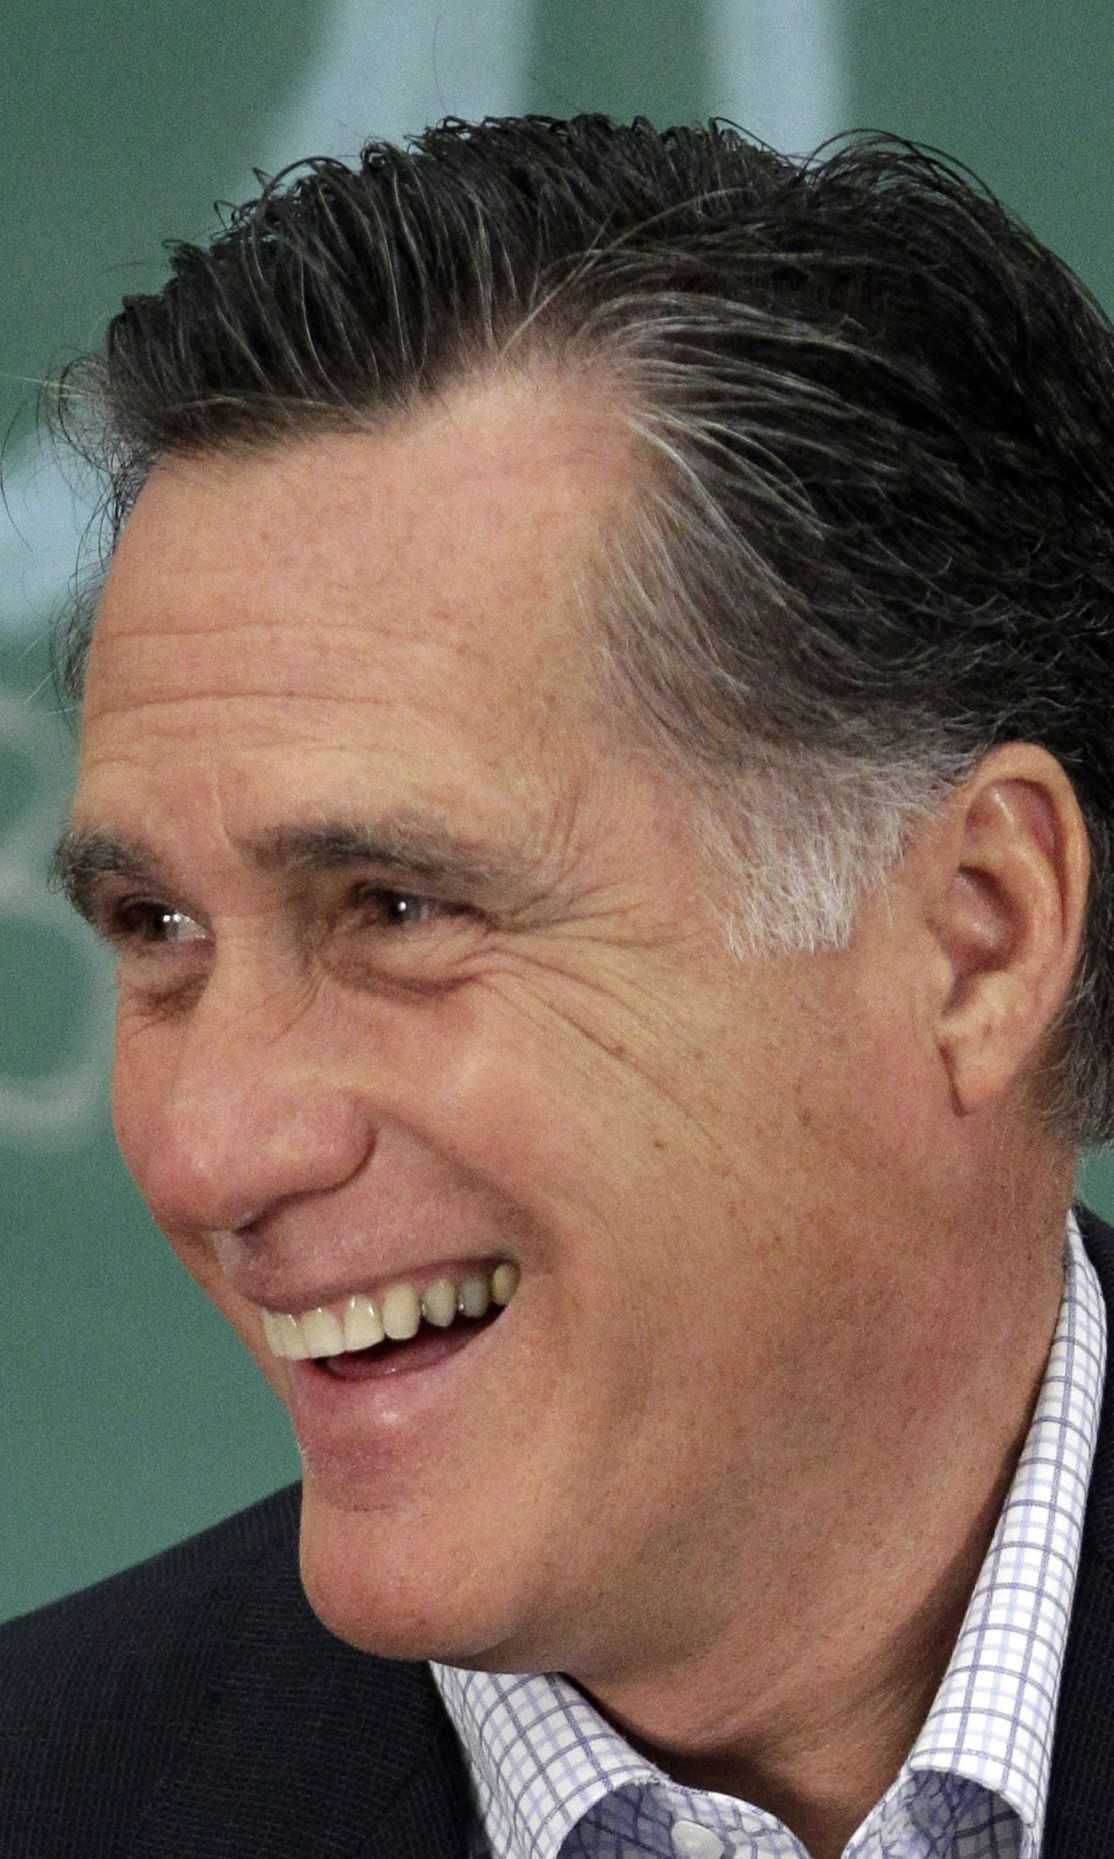 Romneys Vows Raise Eyebrows Business Postandcourier